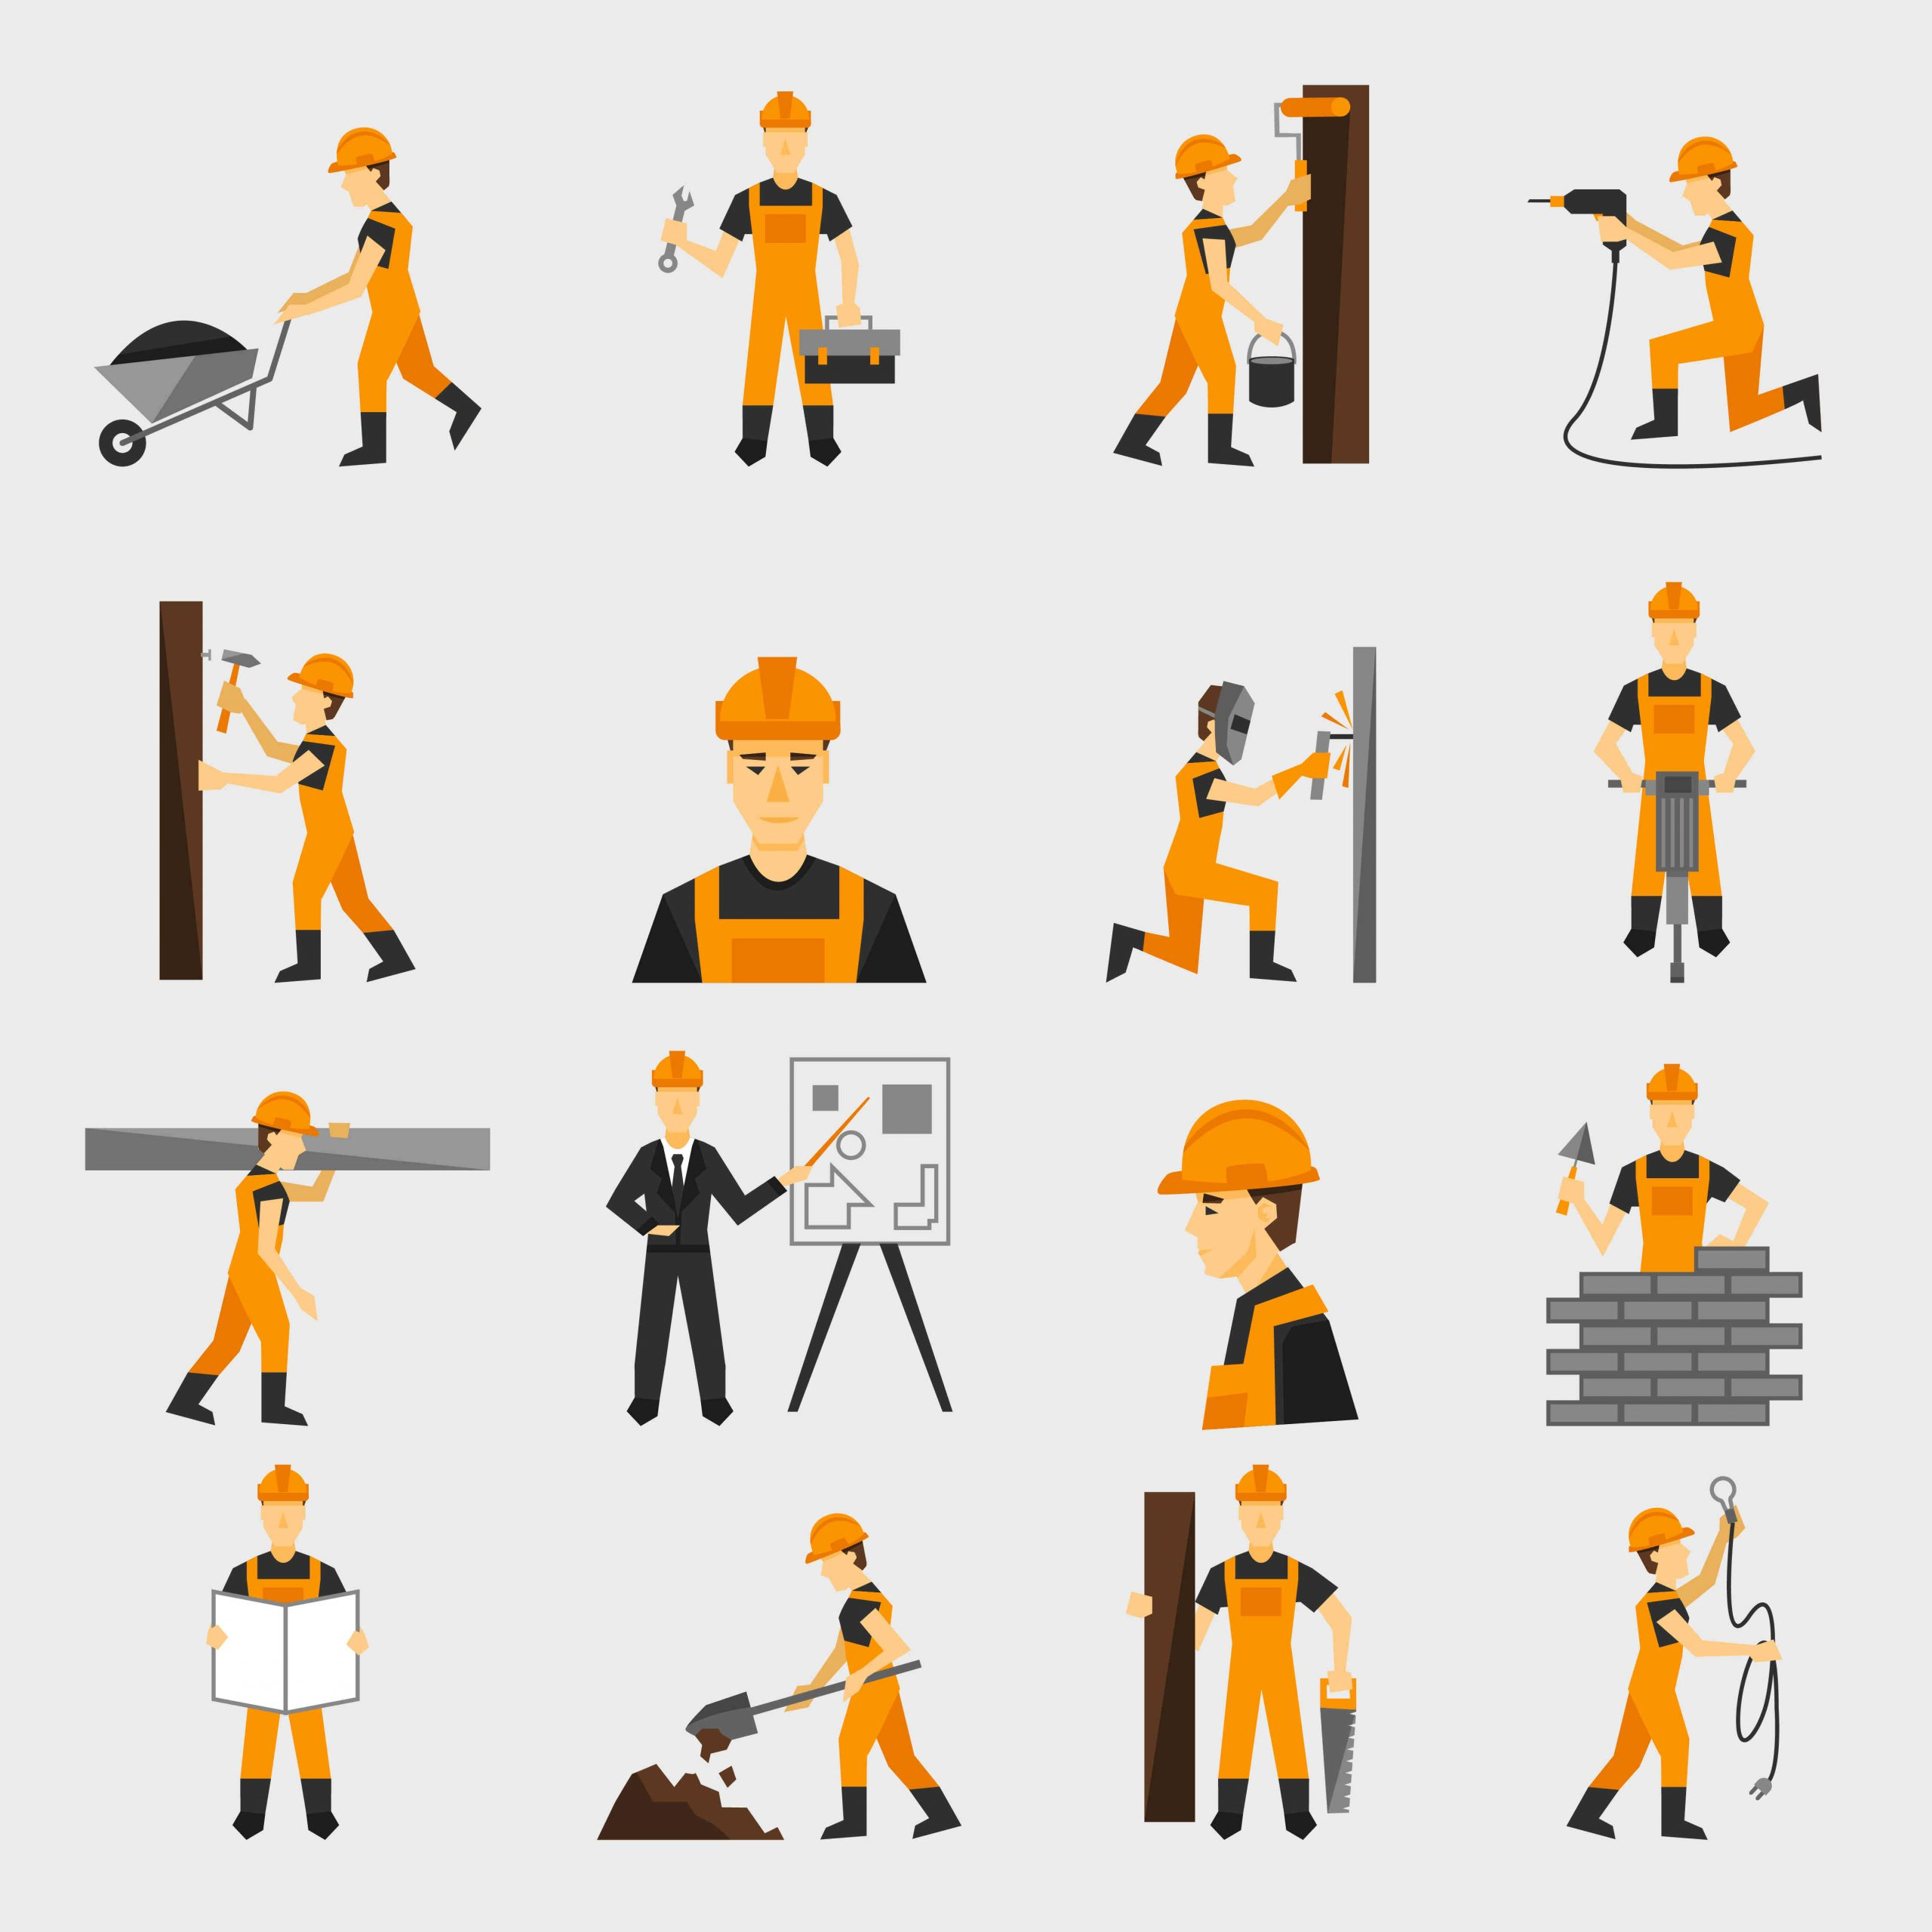 CONTRACTOR'S ALL RISKS INSURANCE policy - vector image of contractors doing different tasks